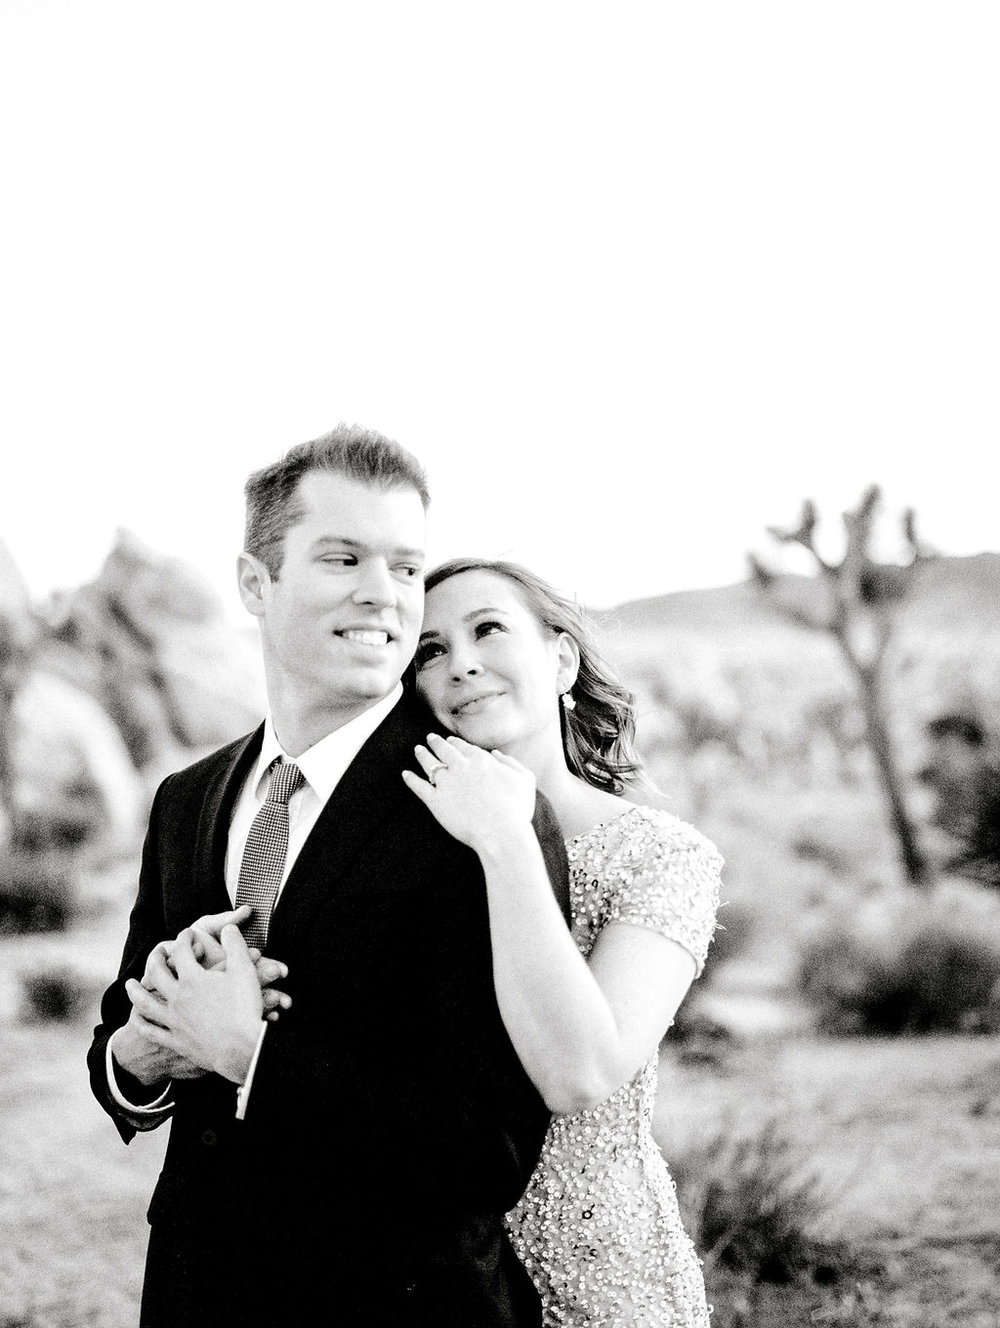 Joshua Tree Engagement Session by Heather Anderson Photography (www.heatherandersonphoto.com).